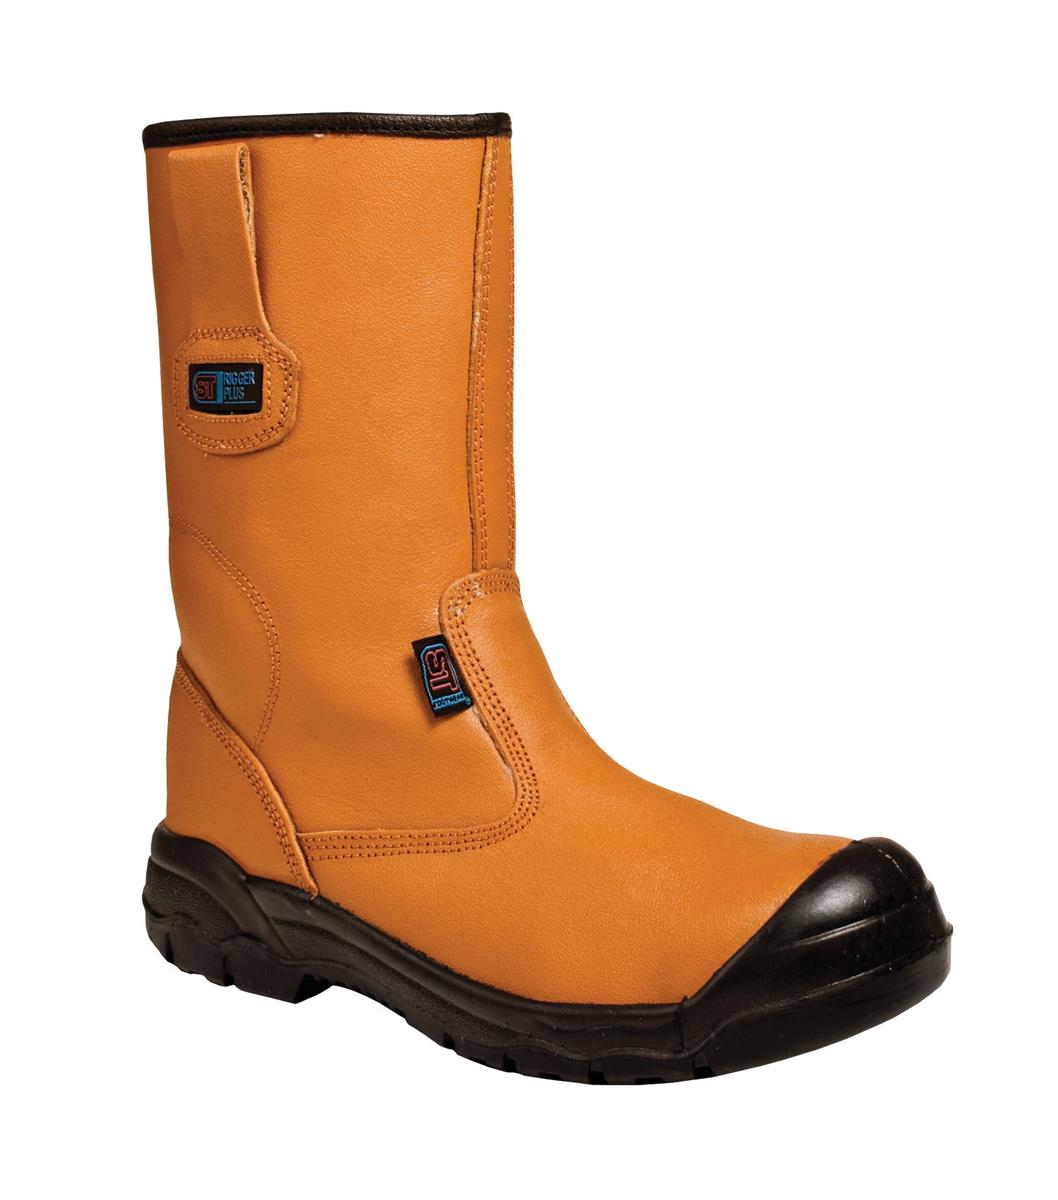 Supertouch Rigger Boot Plus Leather with Rubber Toecap Size 12 Tan Ref 90517 *Approx 3 Day Leadtime*